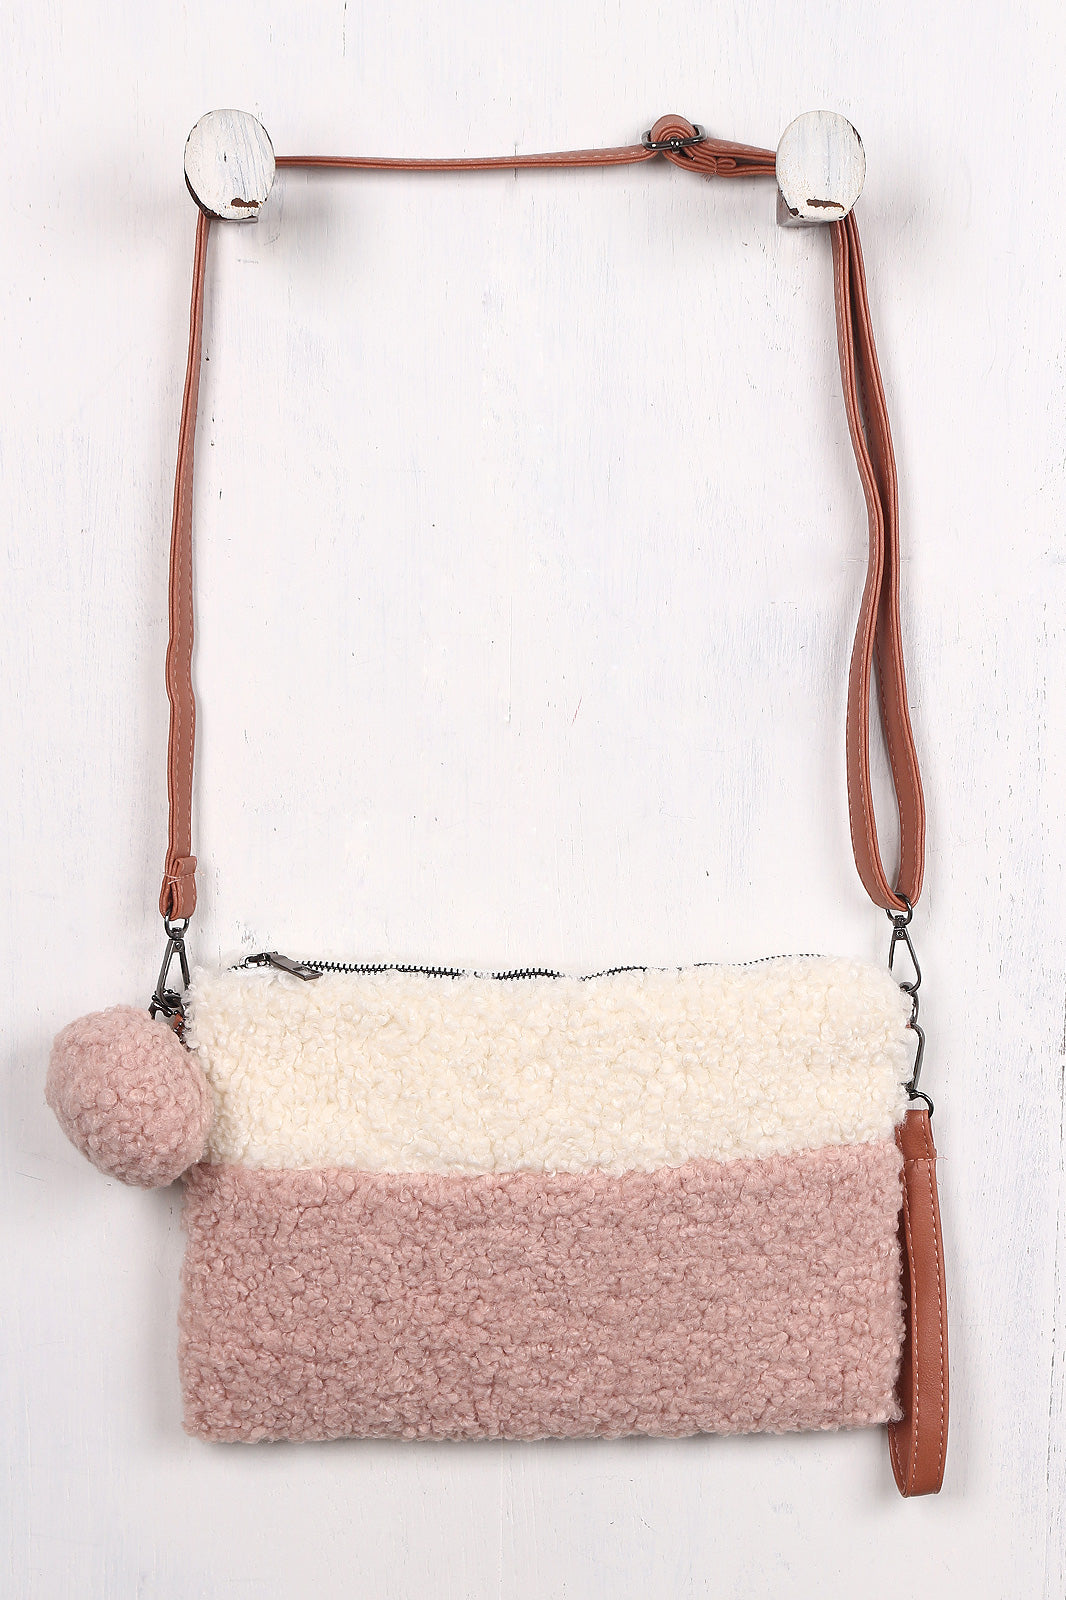 Crossbody Bags For Women Small Shoulder Bag With Tassel Purse Two Tone Faux Shearling Clutch Crossbody Bag